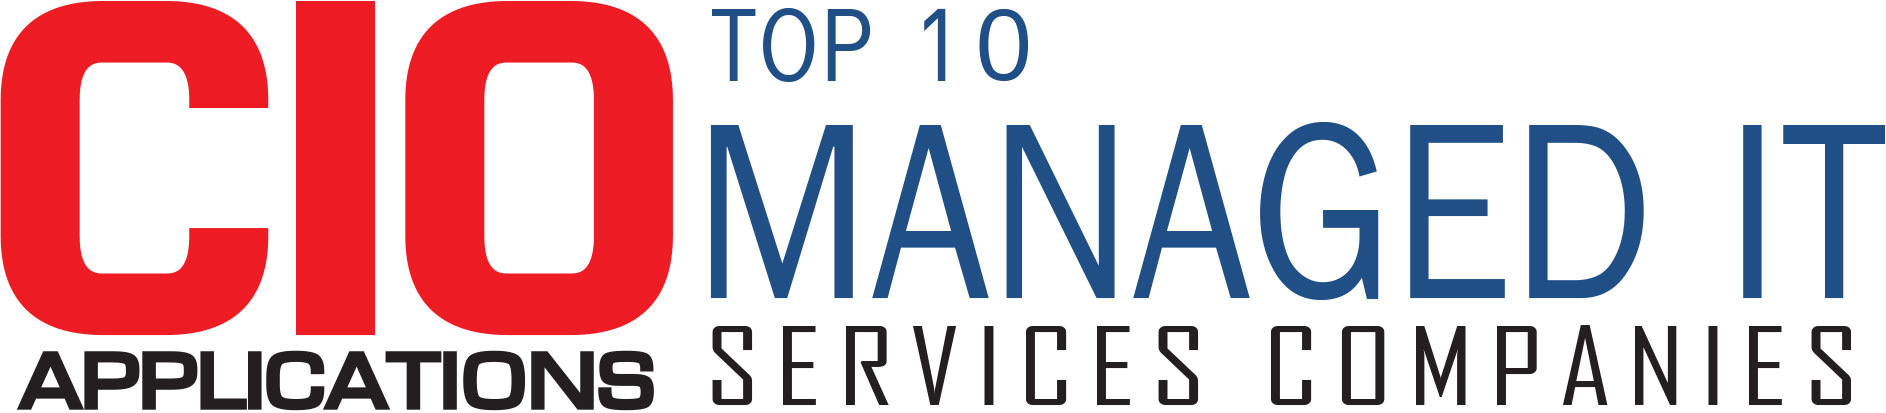 Top 10 Managed IT Services Companies - 2019